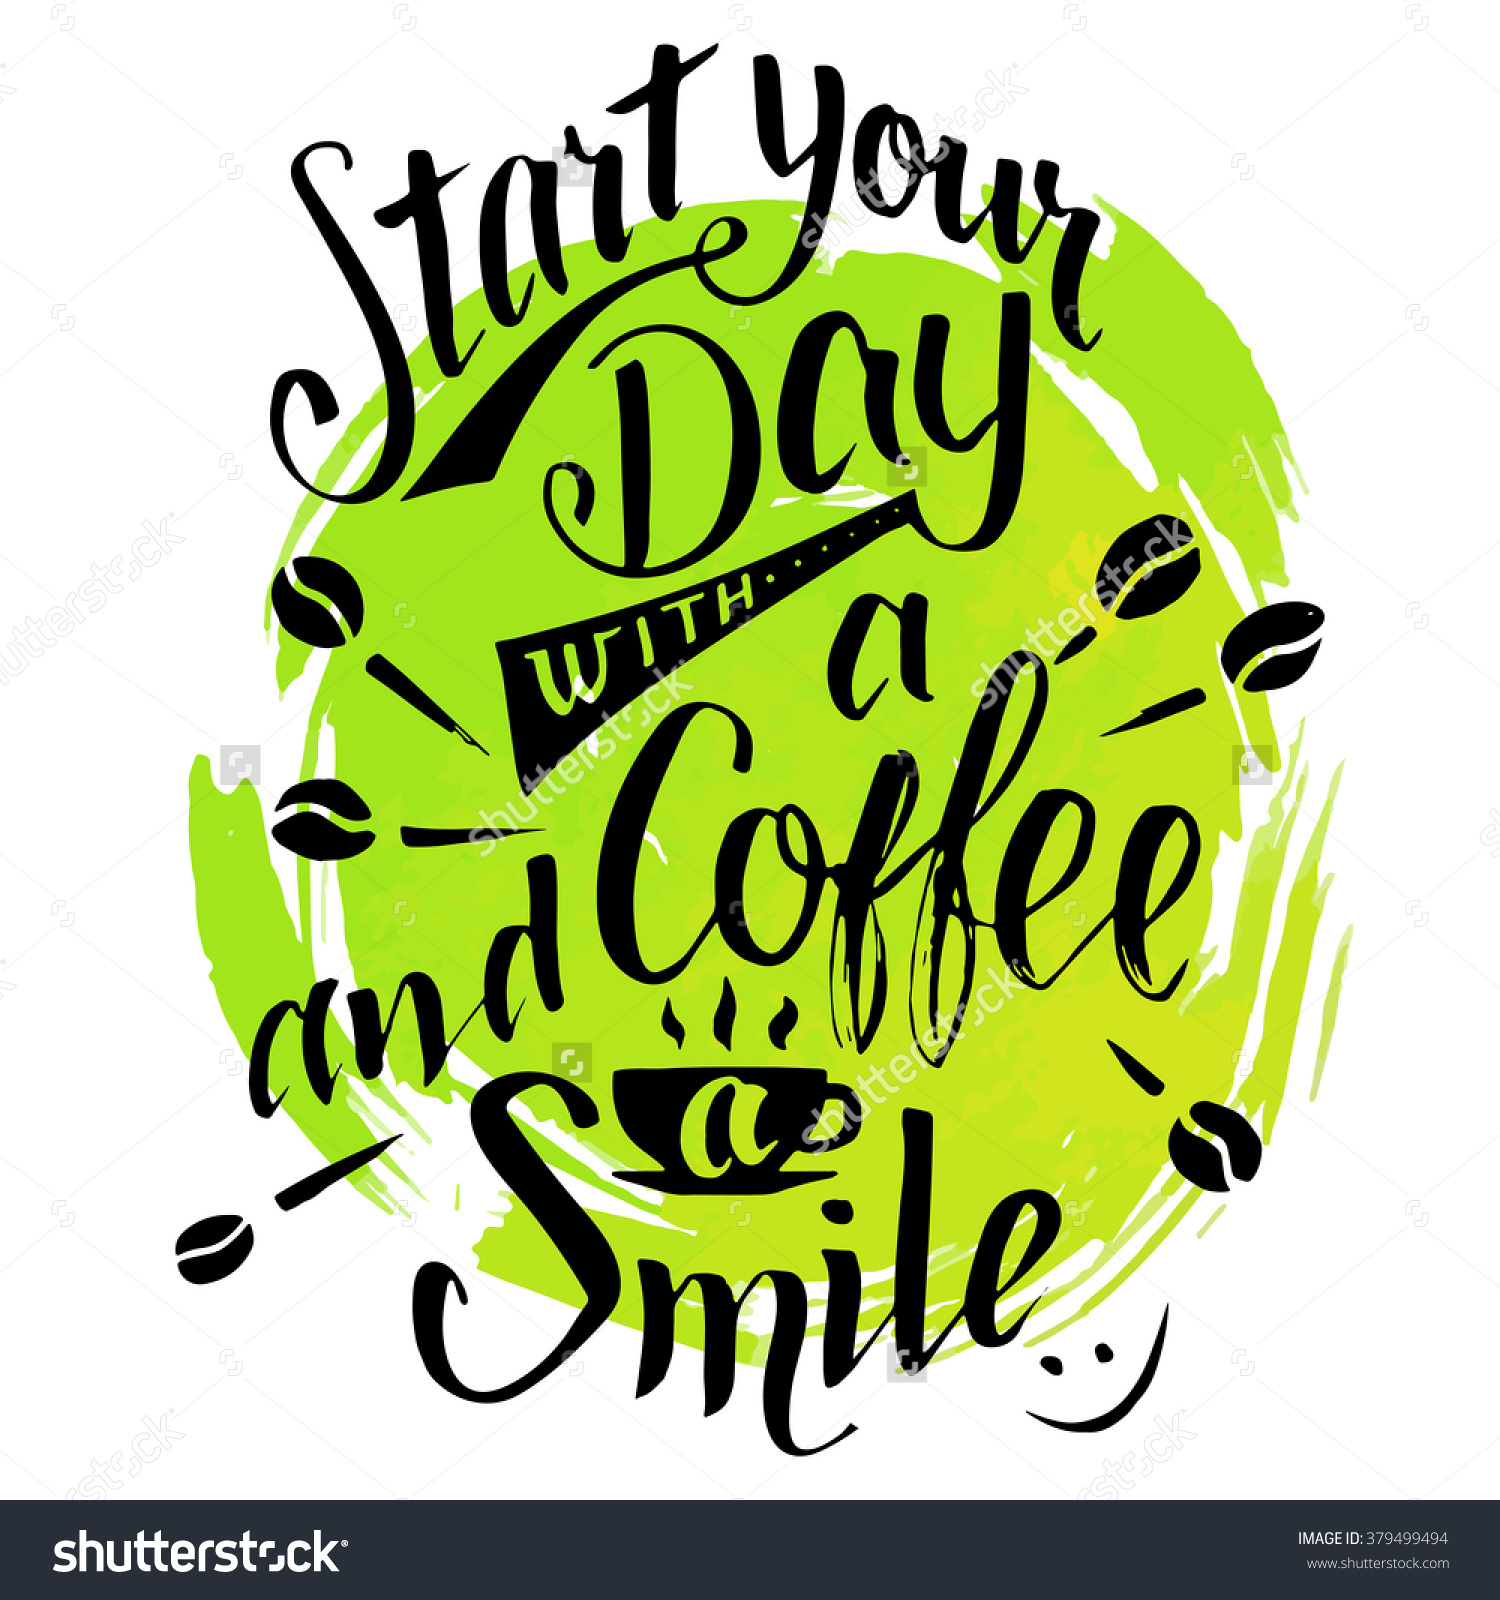 Start Your Day Coffee Smile Modern Stock Vector 379499494.